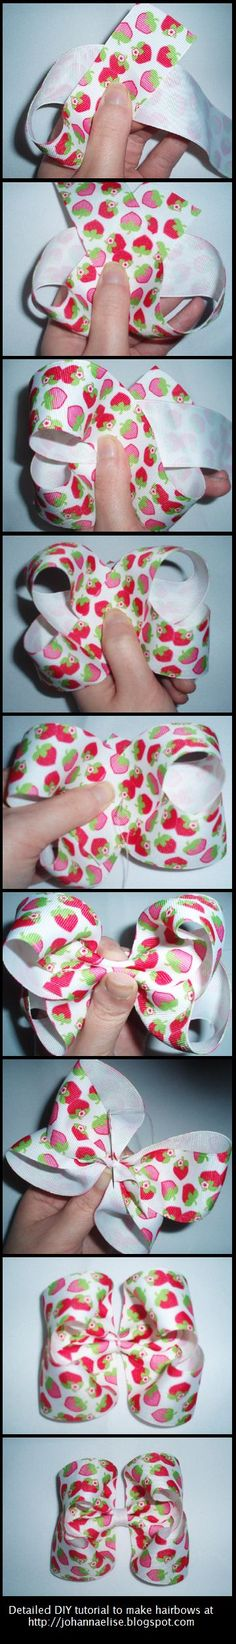 How to Make Boutique Hair Bows Tutorial. Full detailed instructions at http://johannaelise.blogspot.com/2013/10/free-ebook-how-to-make-boutique-hair.html